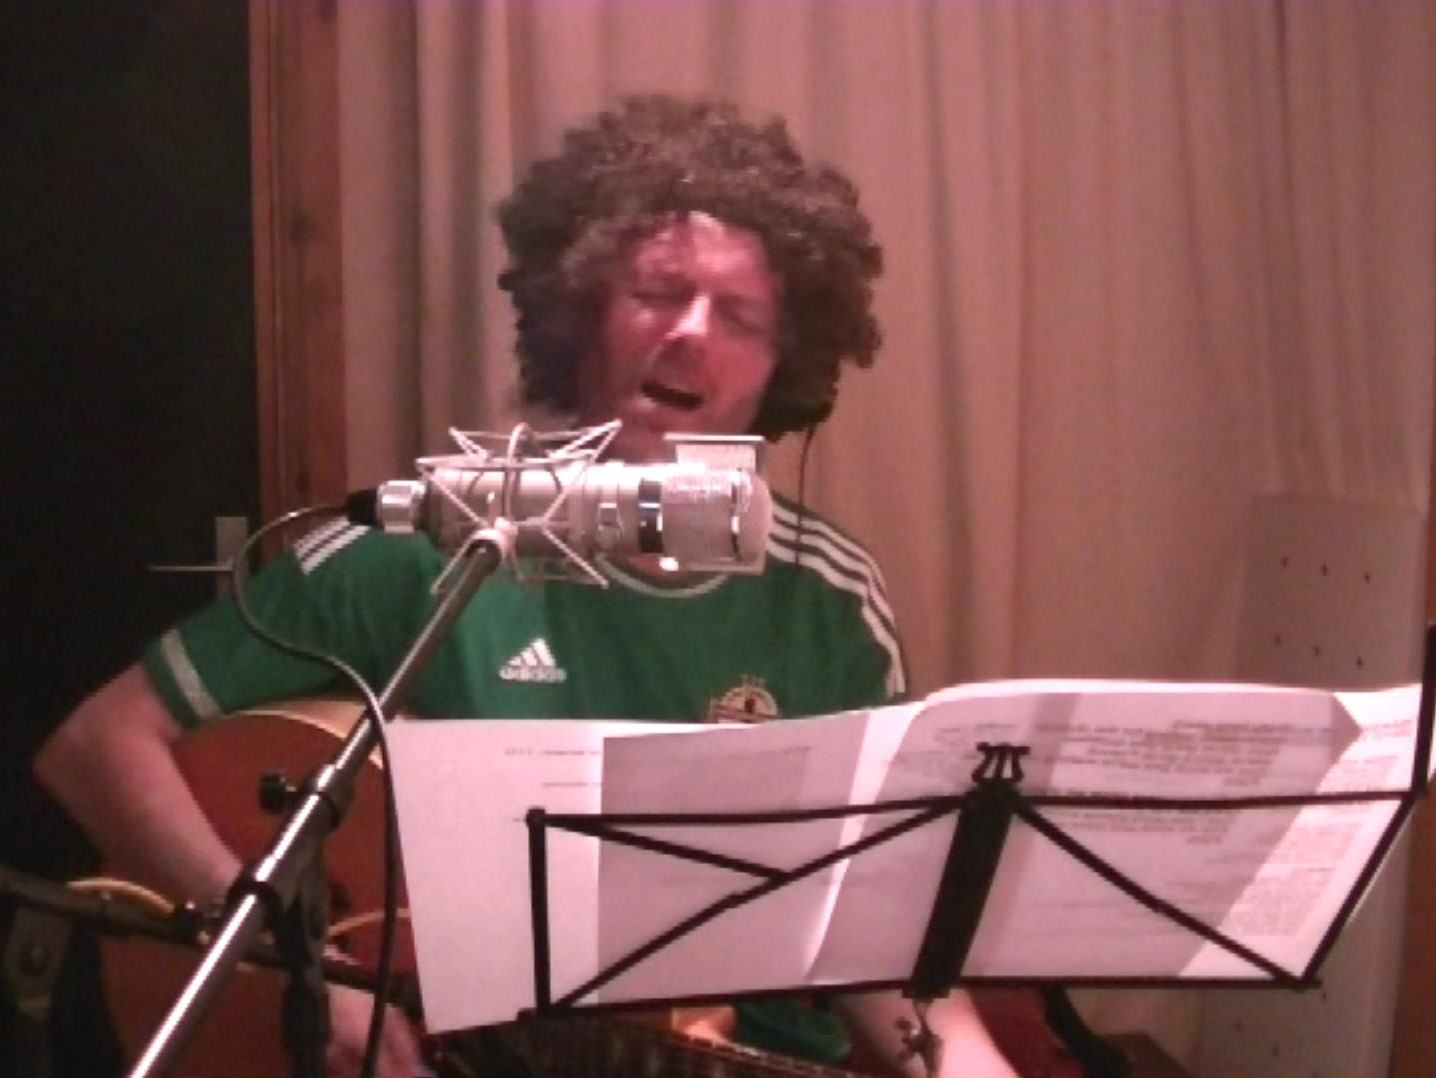 Steve singing and wearing a big wooly wig